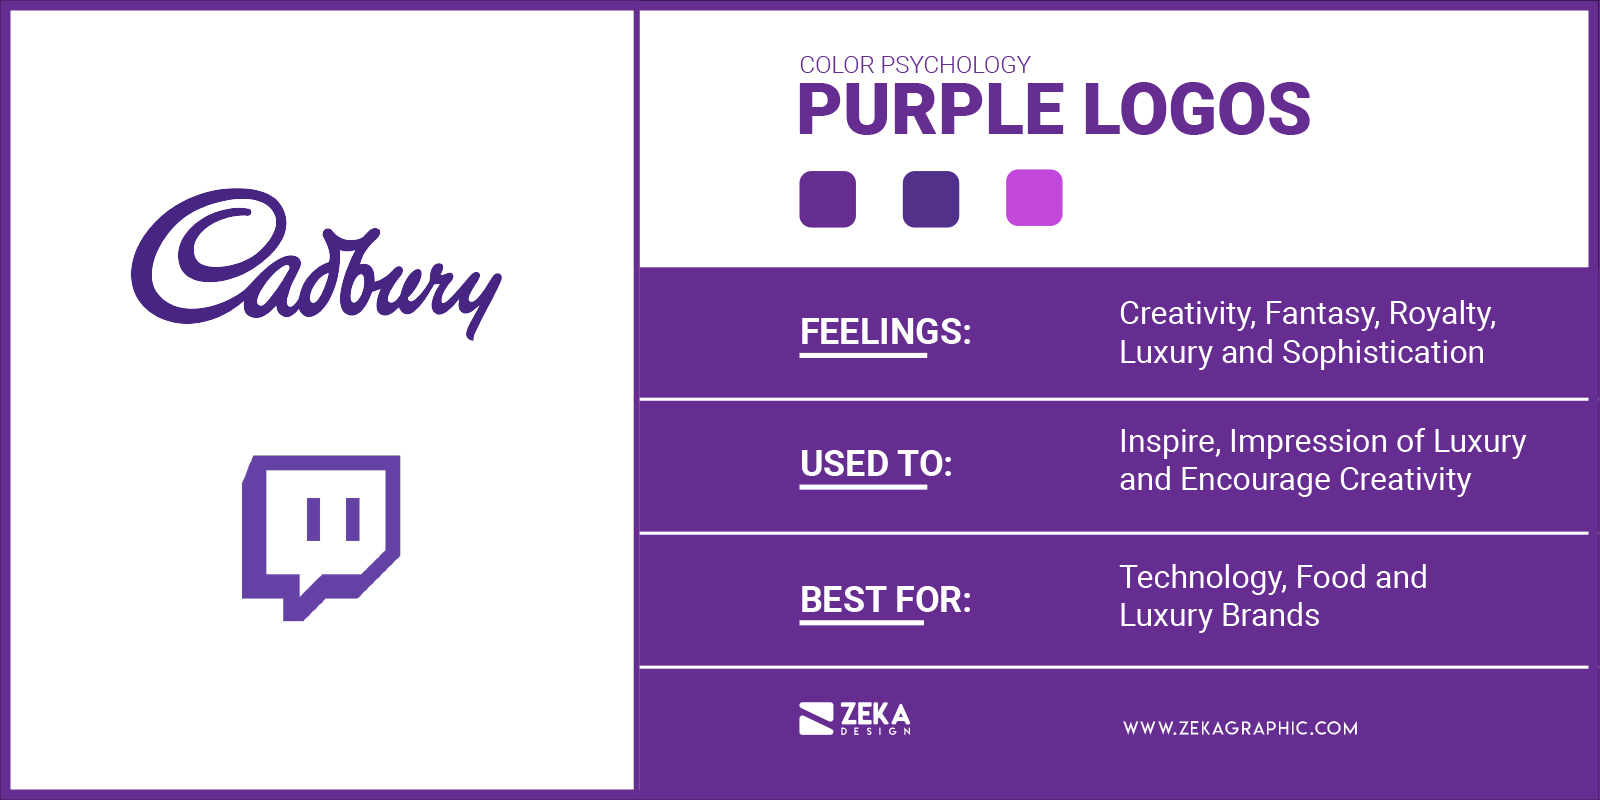 Purple Logos Meaning in Graphic Design